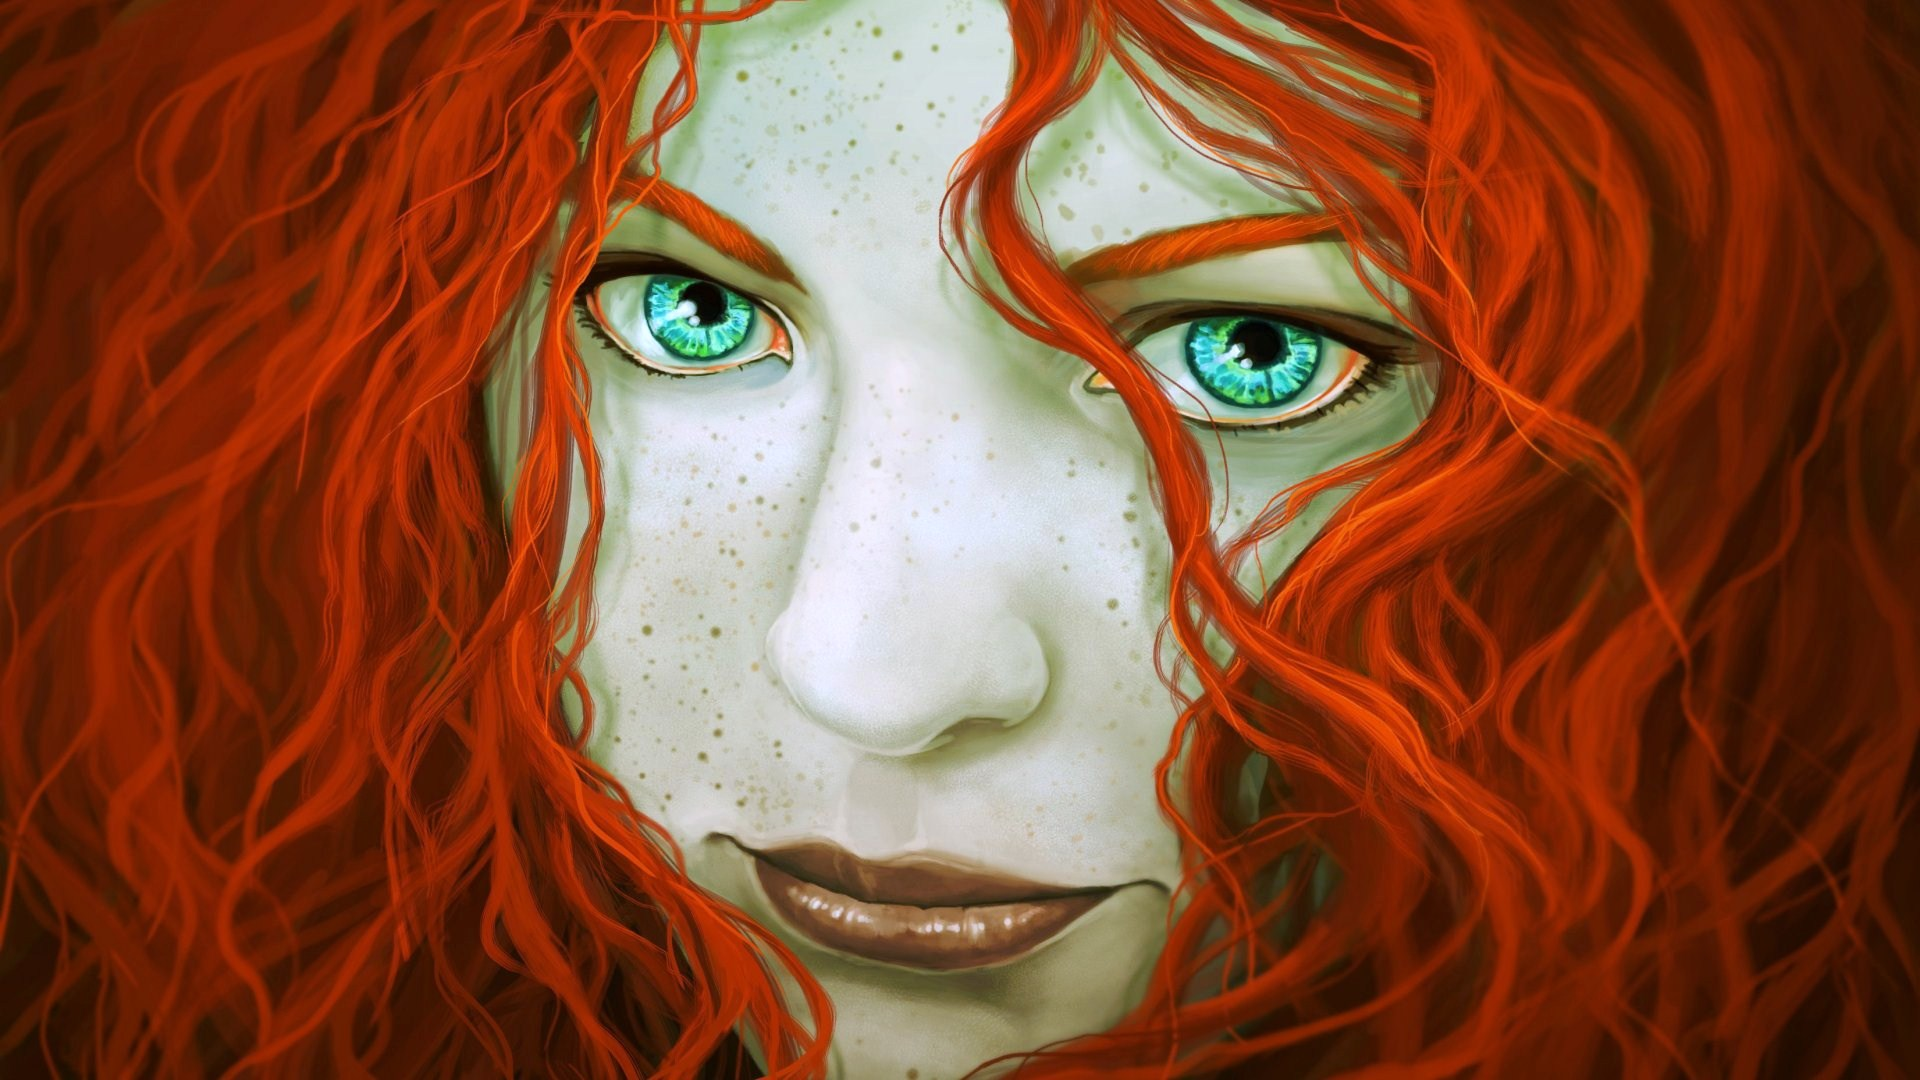 fantasy-girl-red-hair-green-eyes-freckles-face-1920x1080